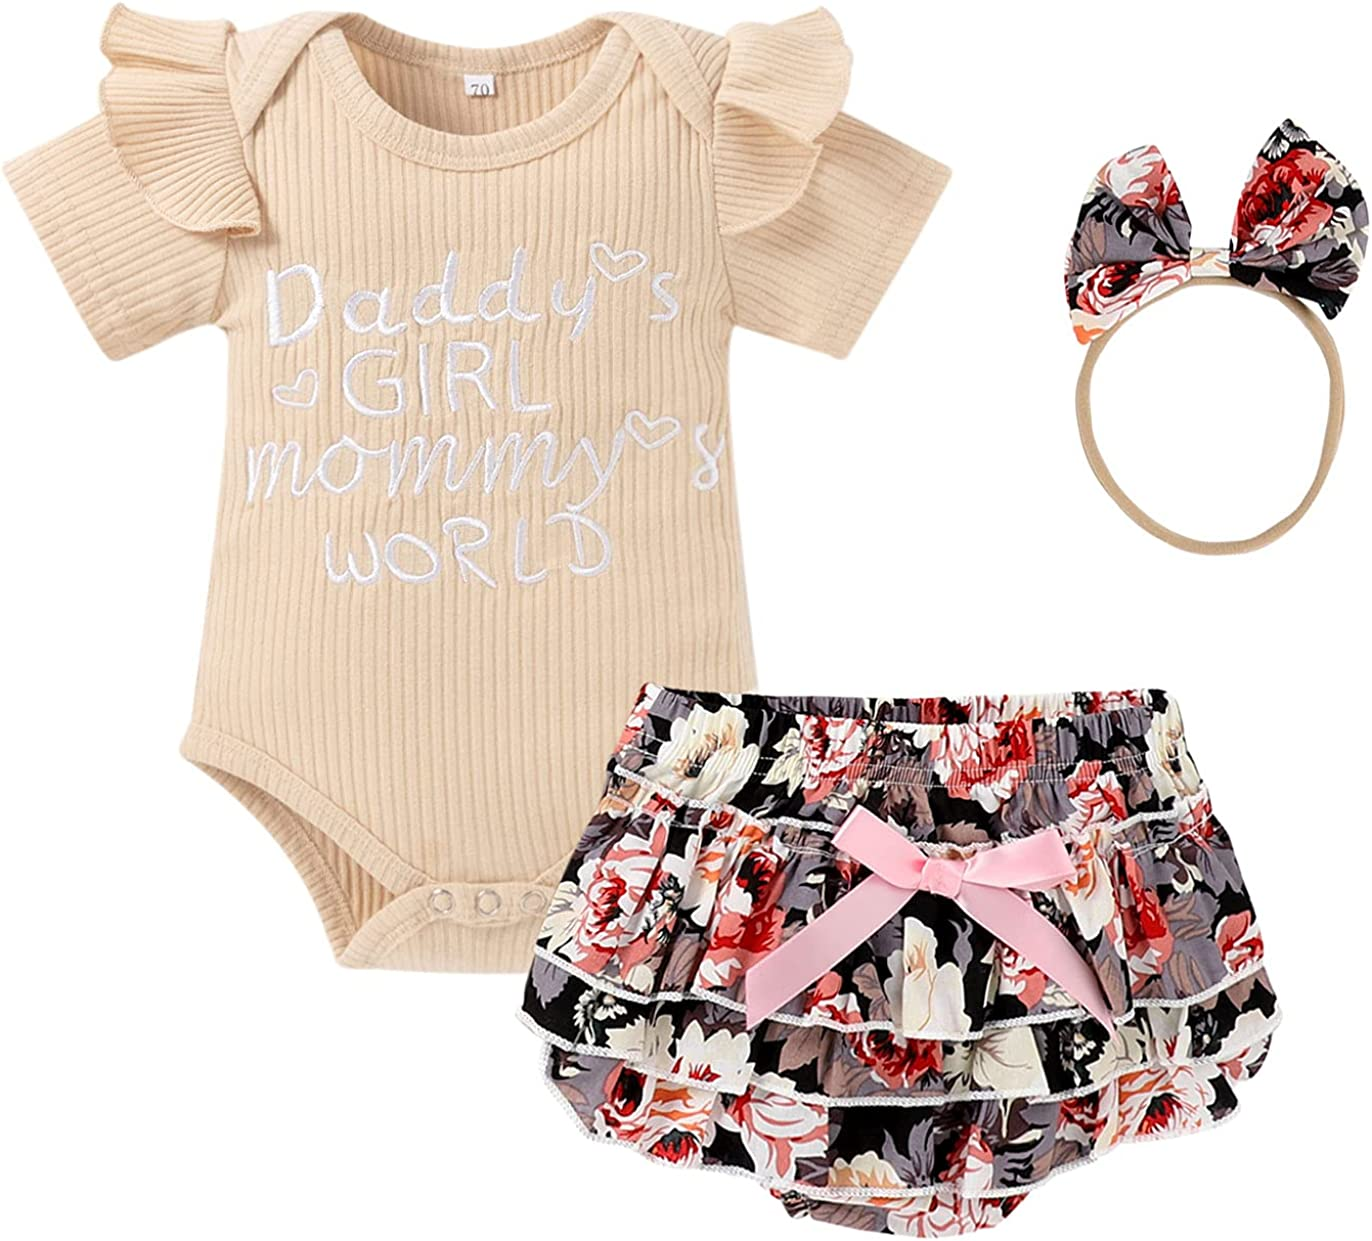 Newborn Girl Outfits Baby All items in the store Little Very popular Clothes Summer Daddys